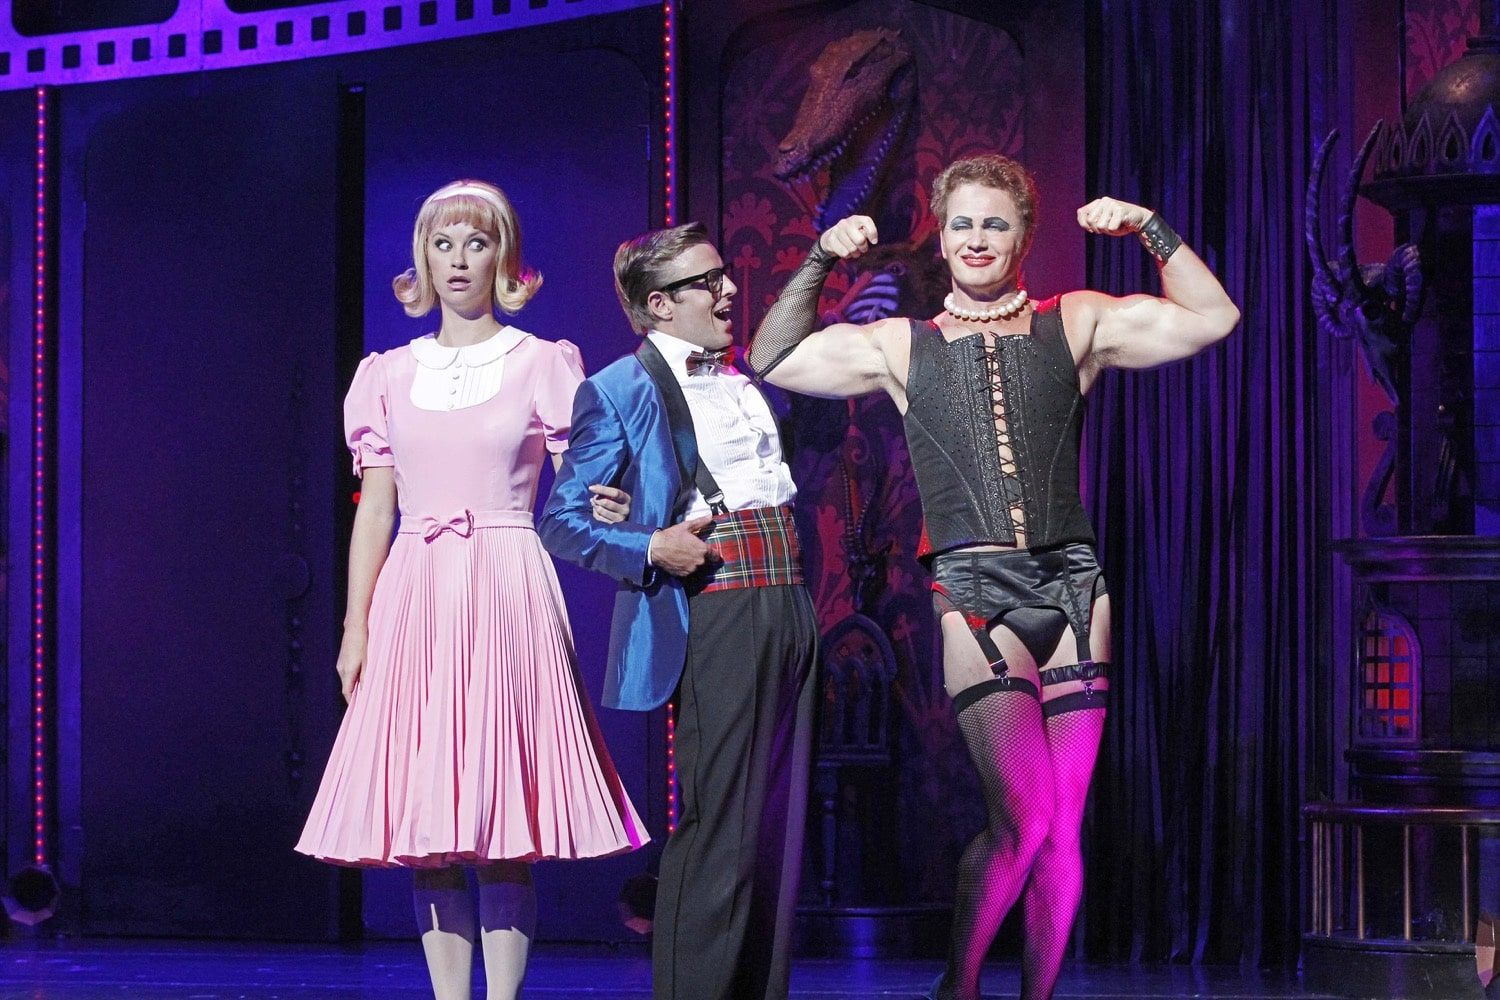 Craig McLachlan, Rocky Horror Picture Show, Sexual Harassment